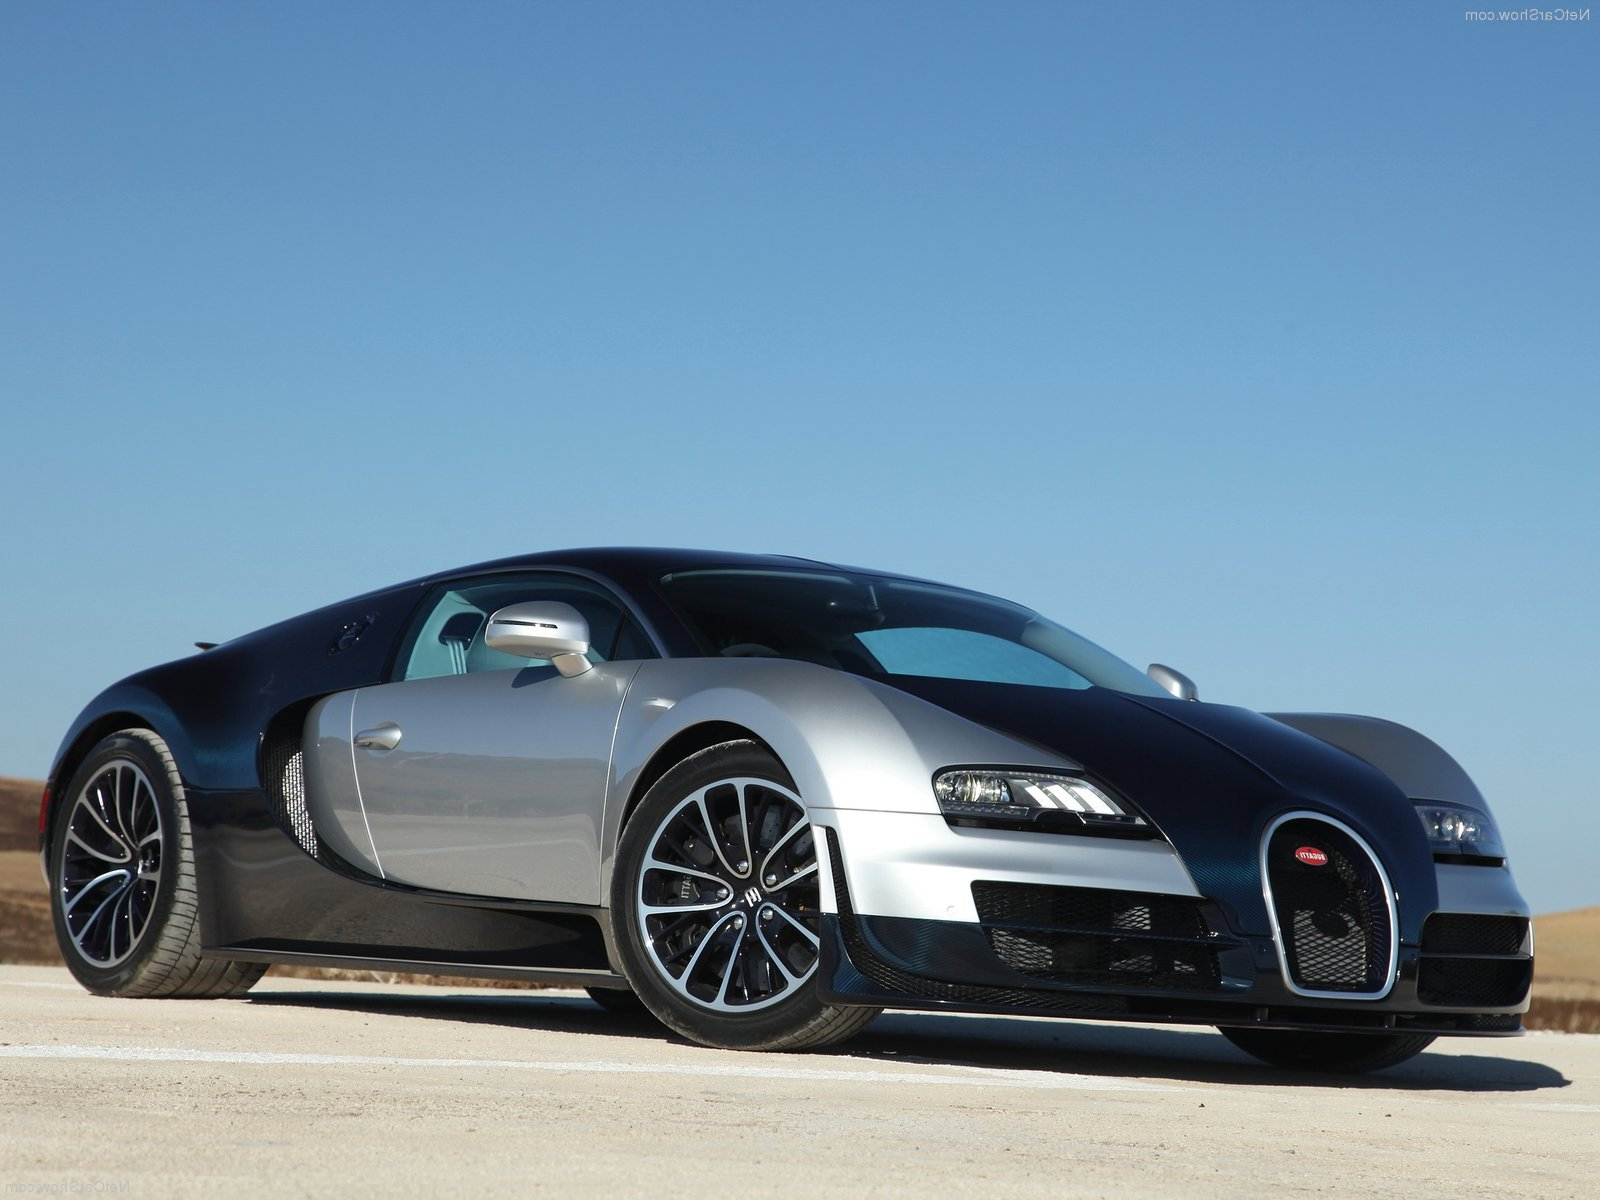 Blue Bugatti Veyron Super Sport Wallpaper: Wallpapers Hd For Mac: The Best Bugatti Veyron Super Sport